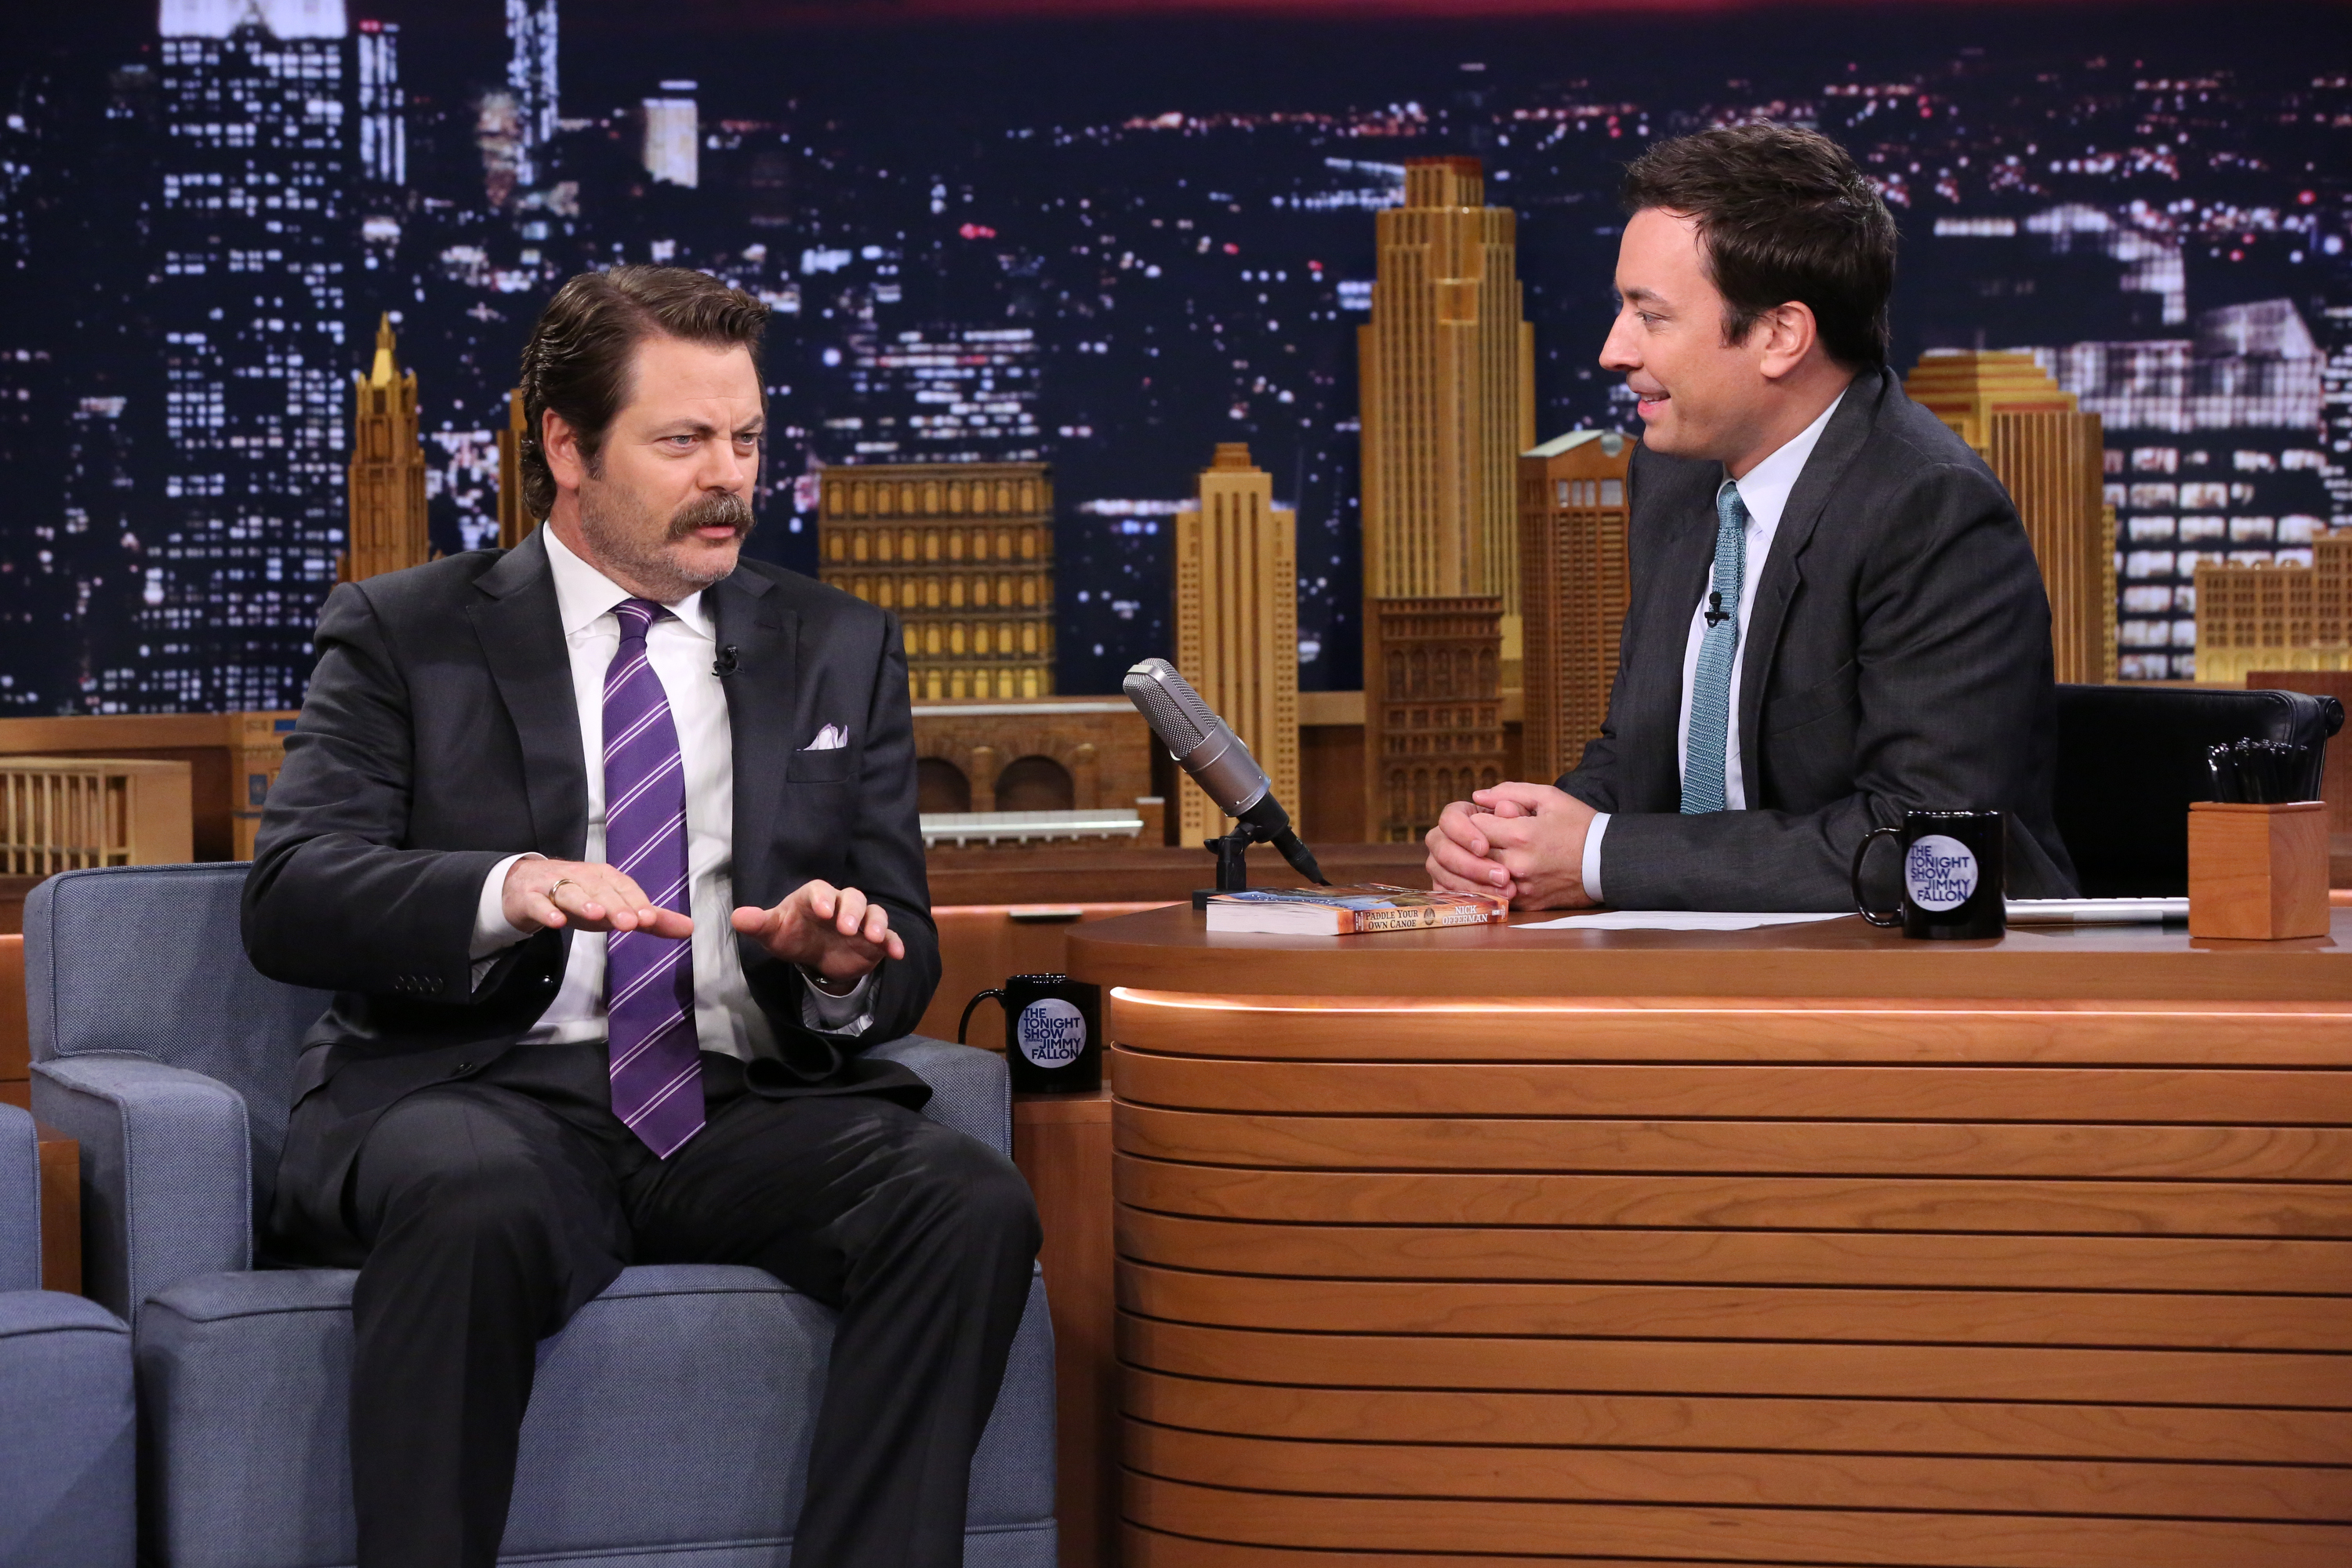 Actor Nick Offerman during an interview with host Jimmy Fallon on September 10, 2014.